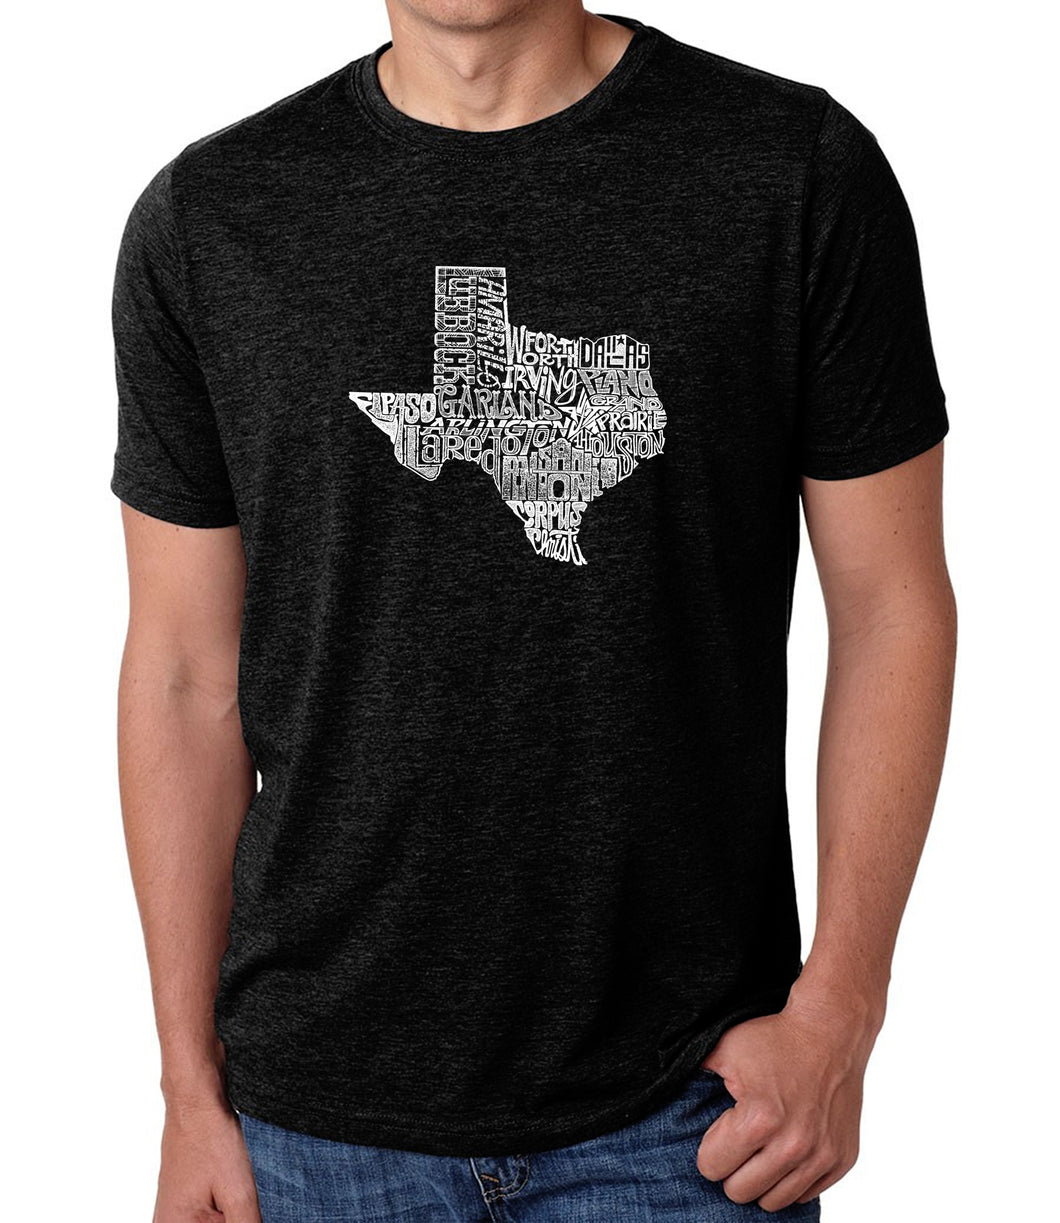 LA Pop Art Men's Premium Blend Word Art T-shirt - The Great State of Texas